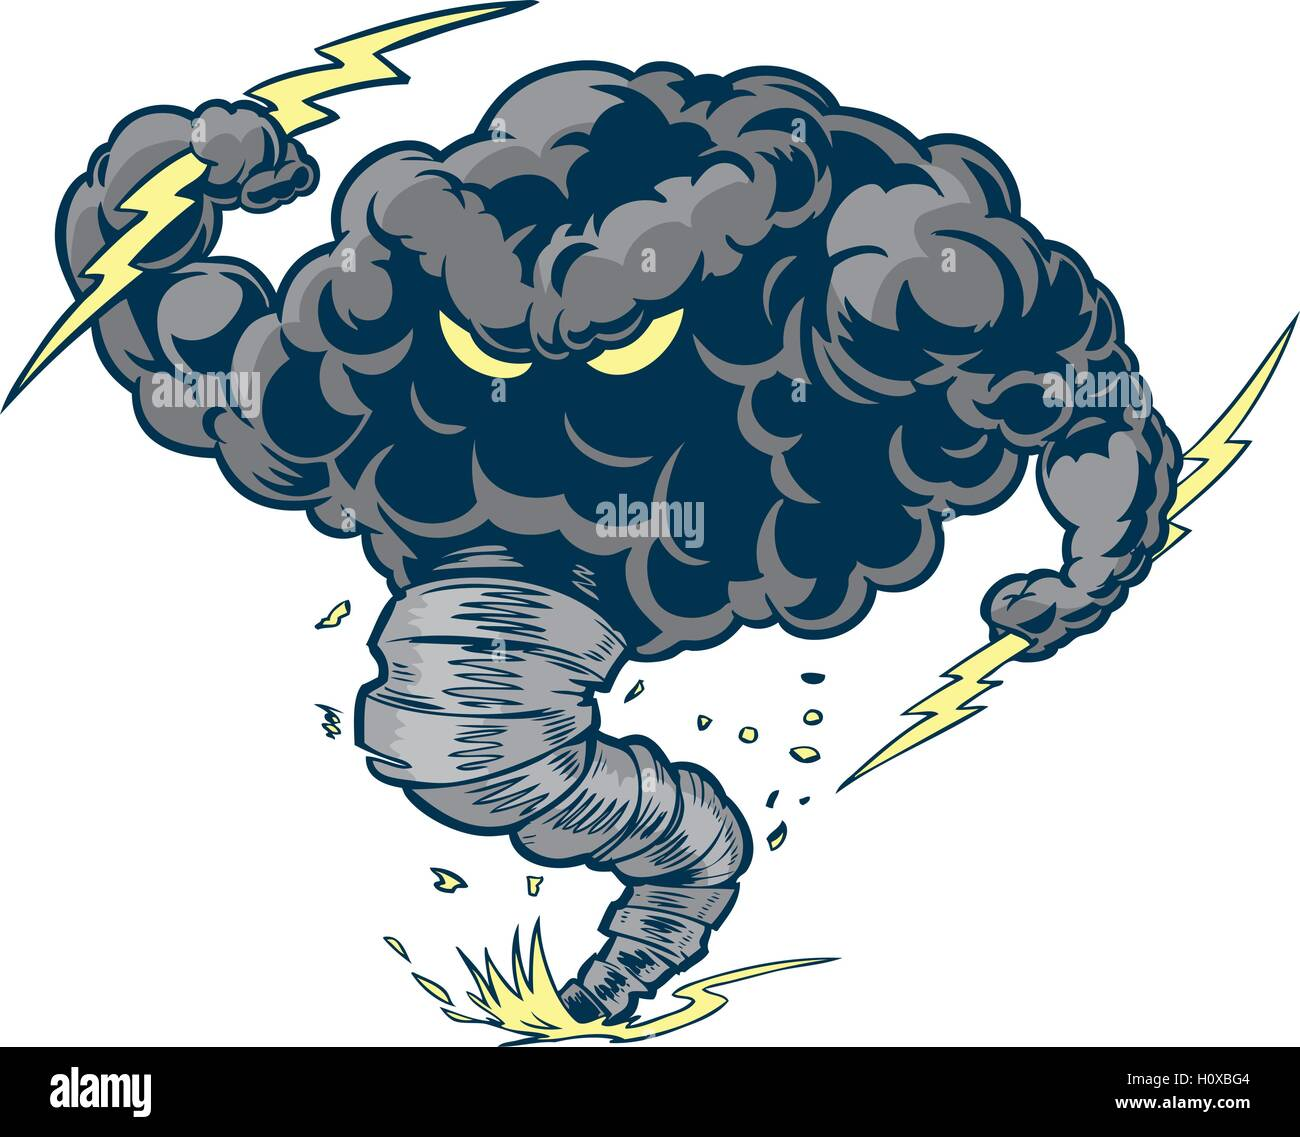 Vector cartoon clip art illustration of a tough thundercloud or storm cloud mascot with lightning bolts and a tornado - Stock Vector